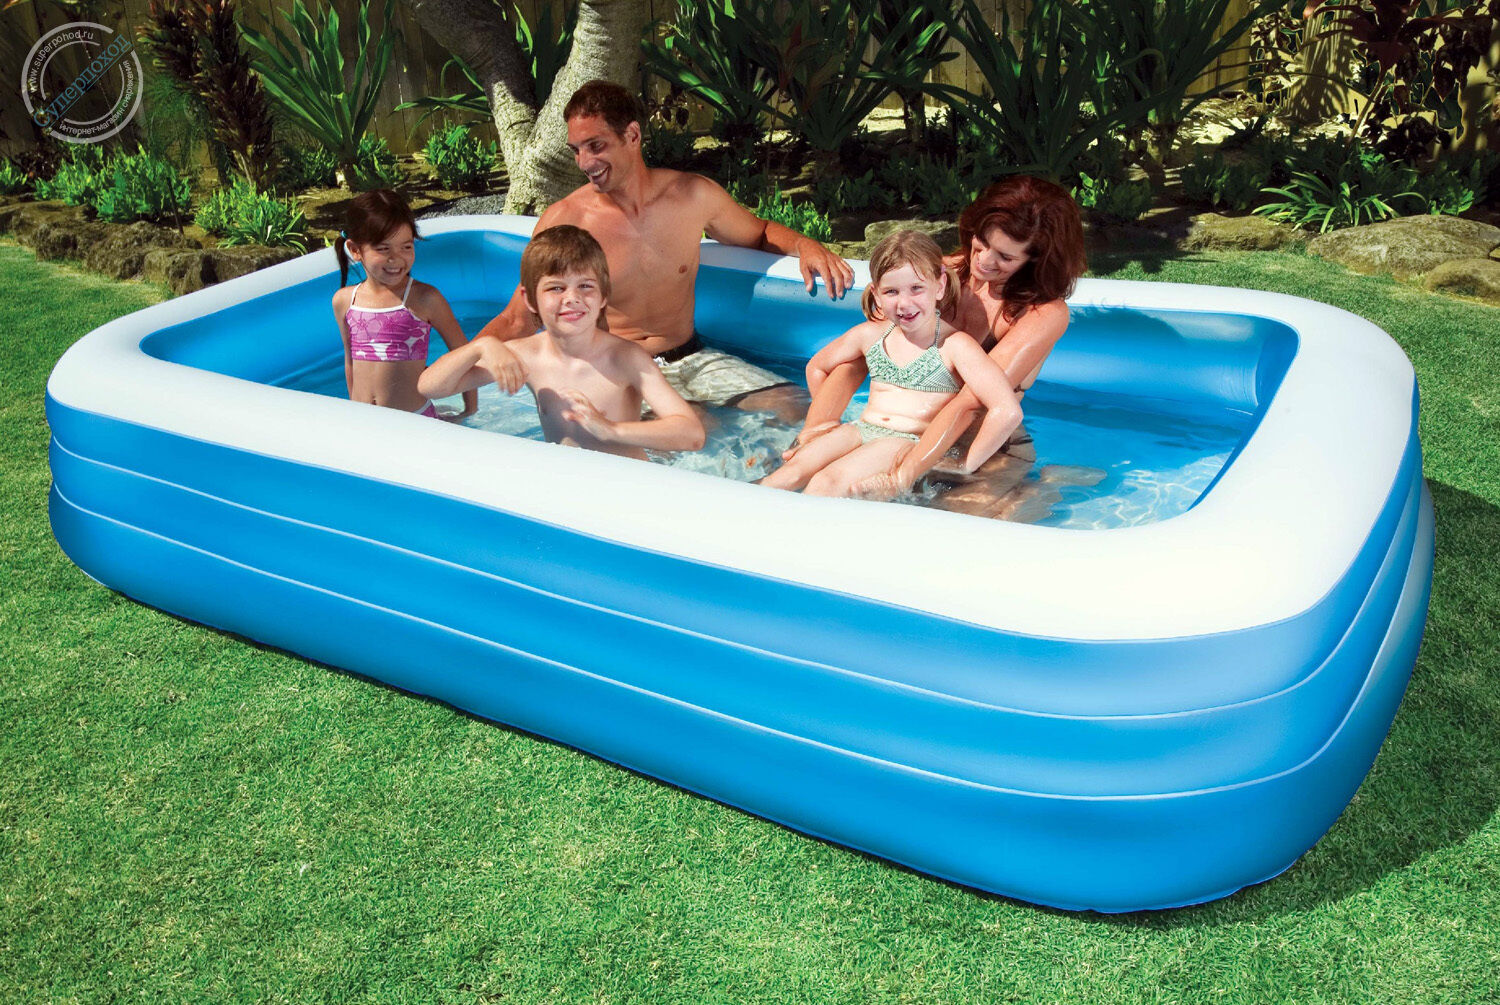 Piscina Intex Familiar Intex Nadar Centro Piscina De La Familia 58484